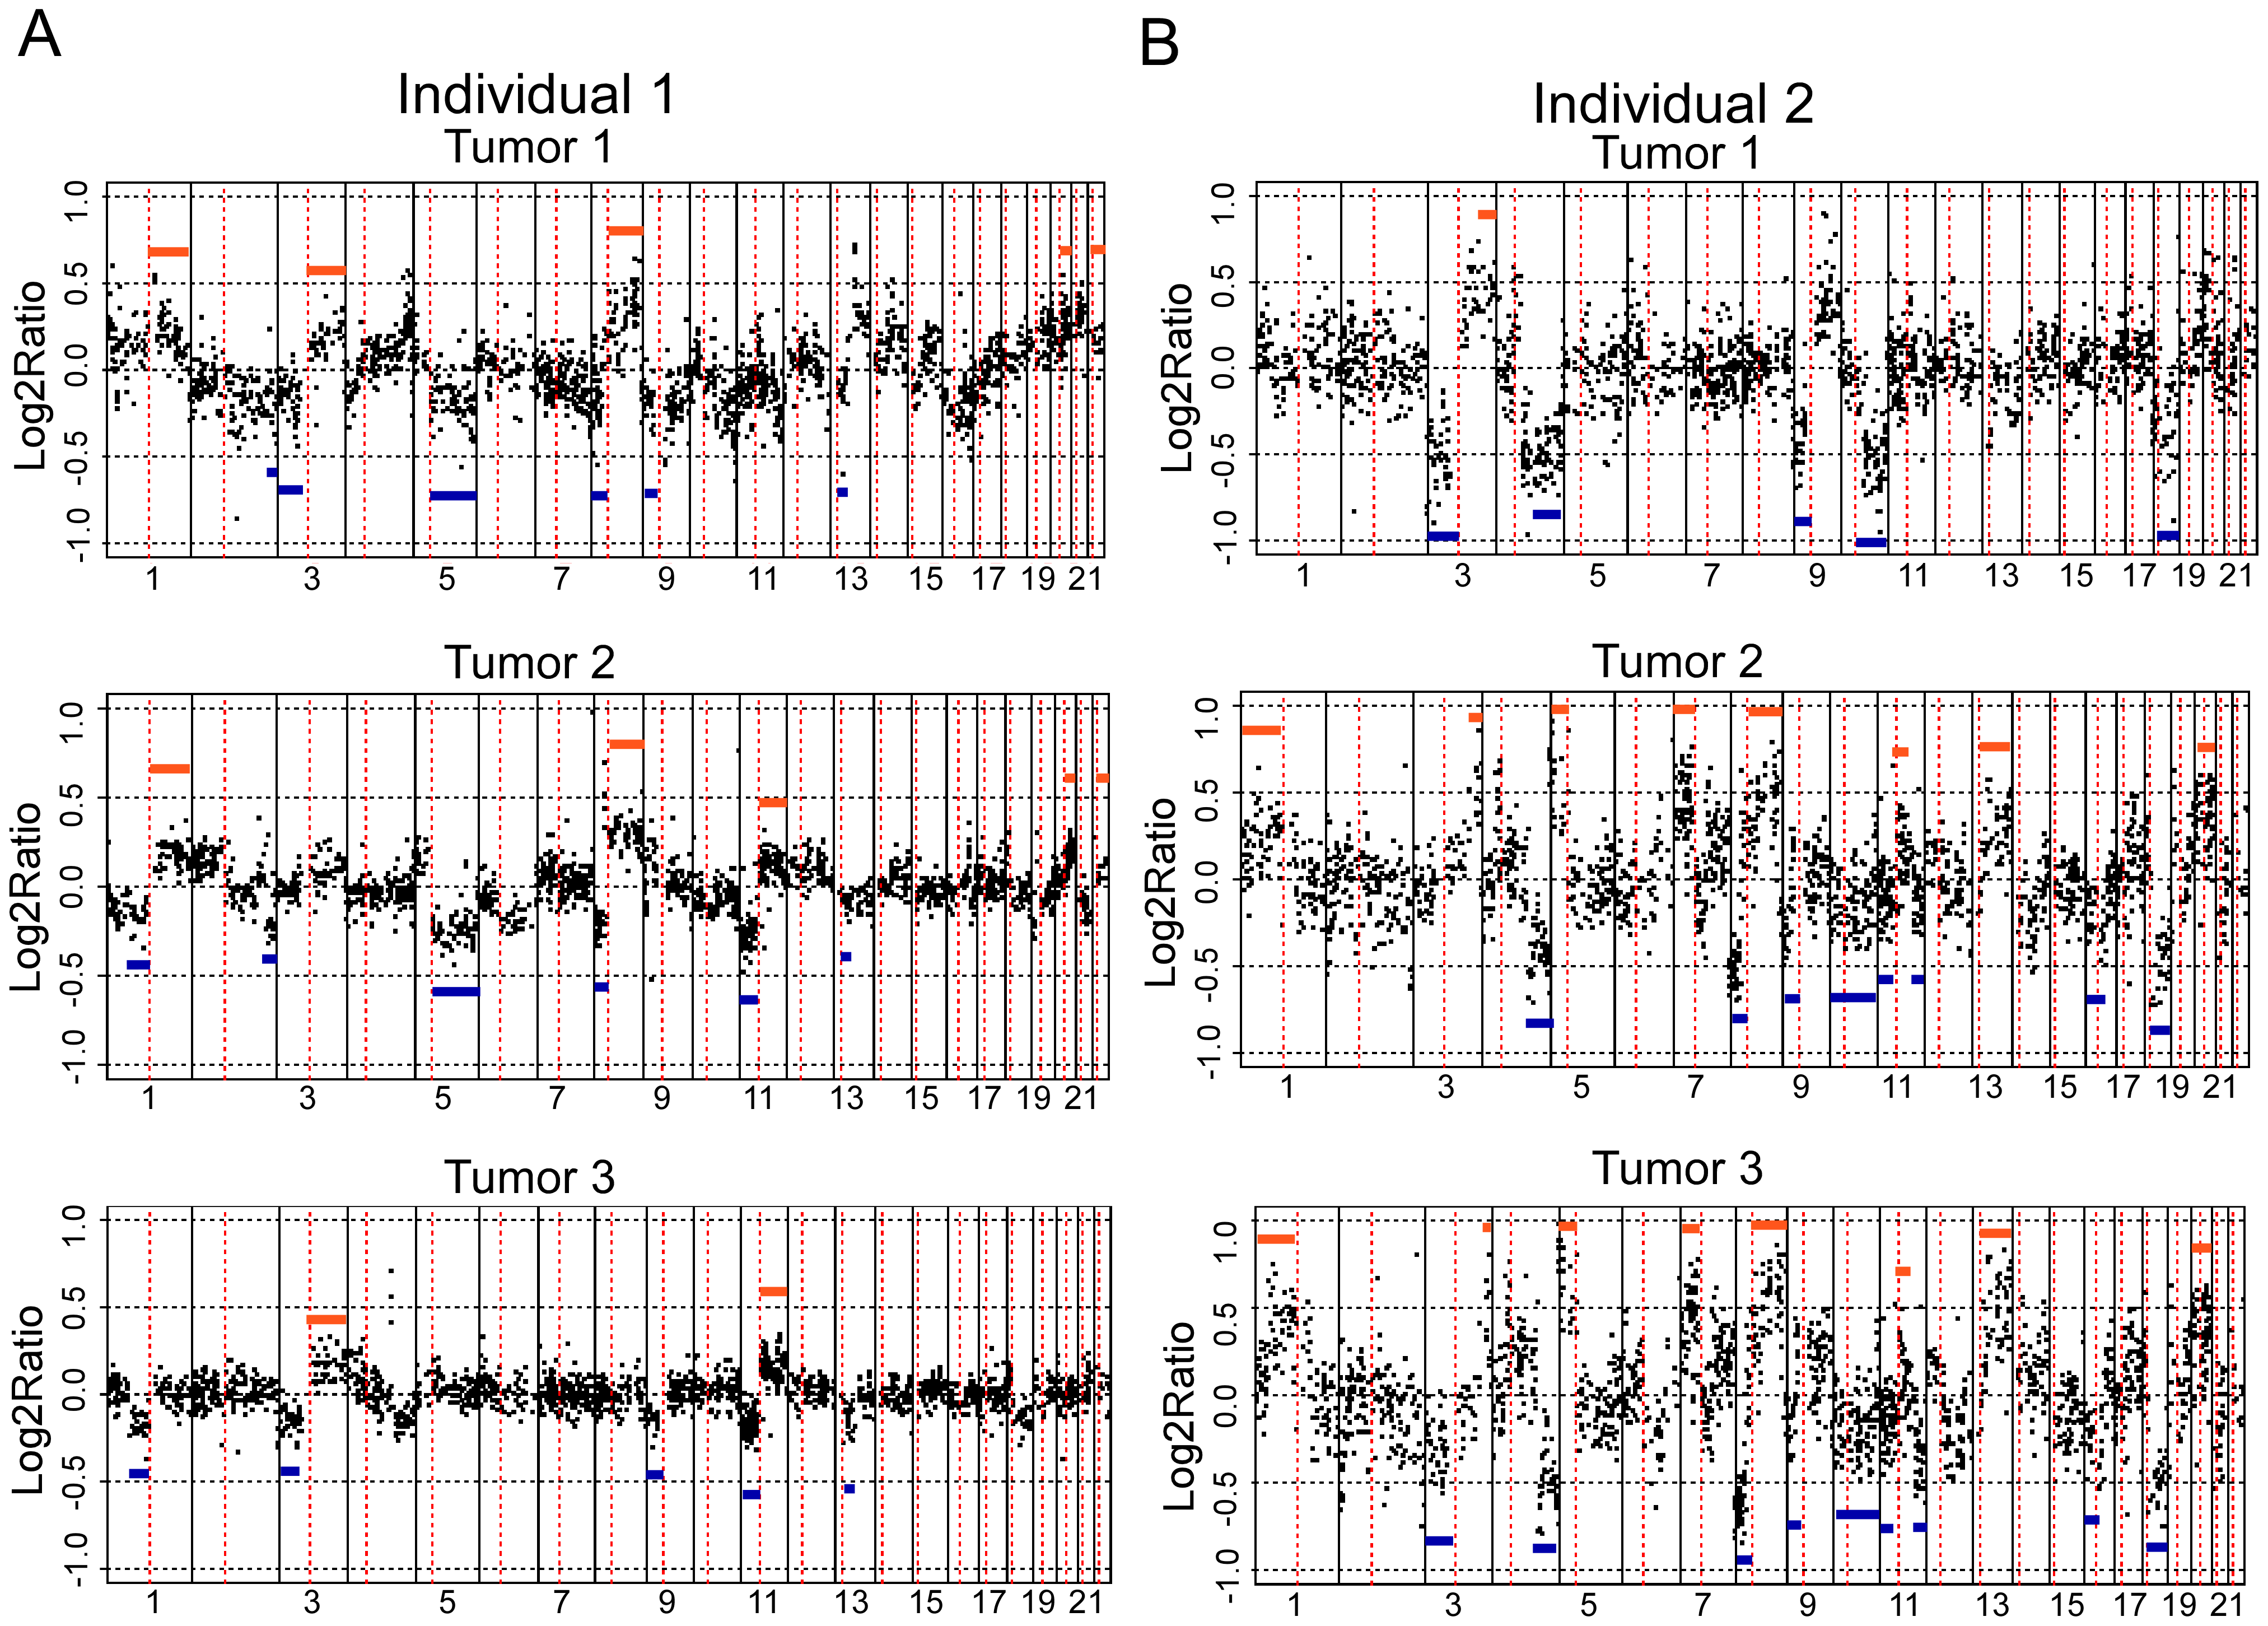 aCGH profiles of independent tumors from two individuals.